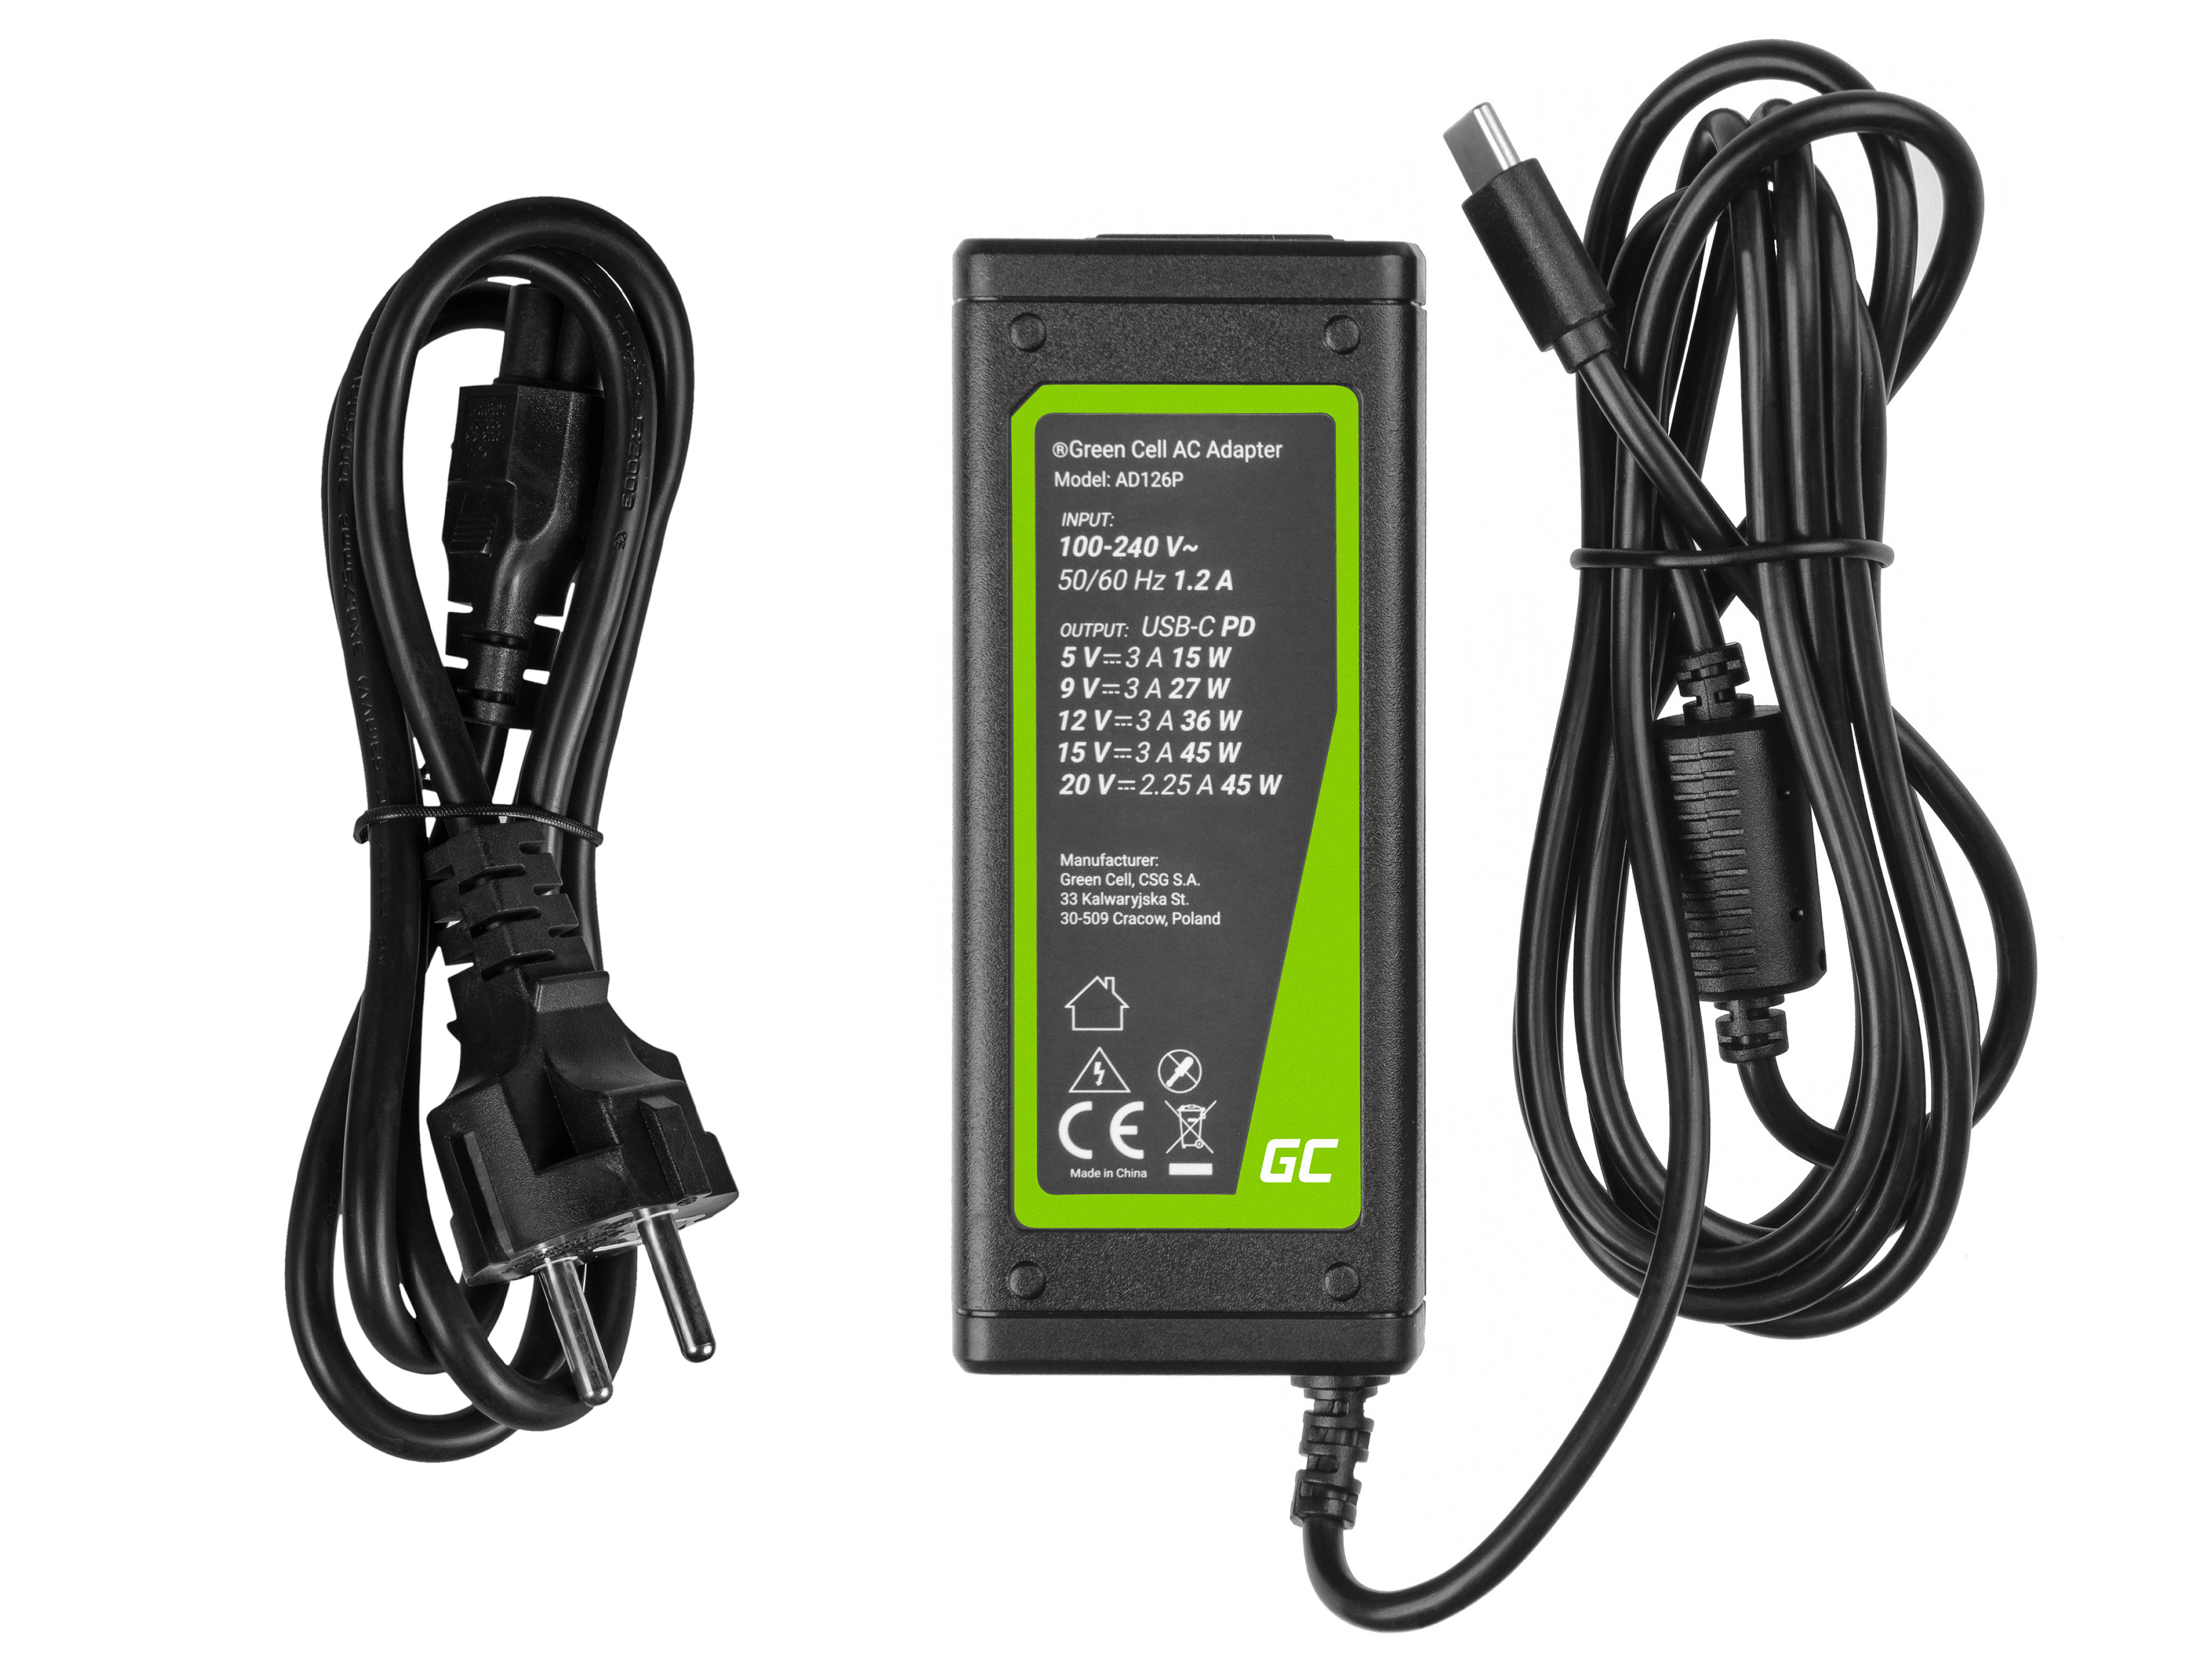 Green Cell Type-C AC adapter for laptops, phones and tablets 45W